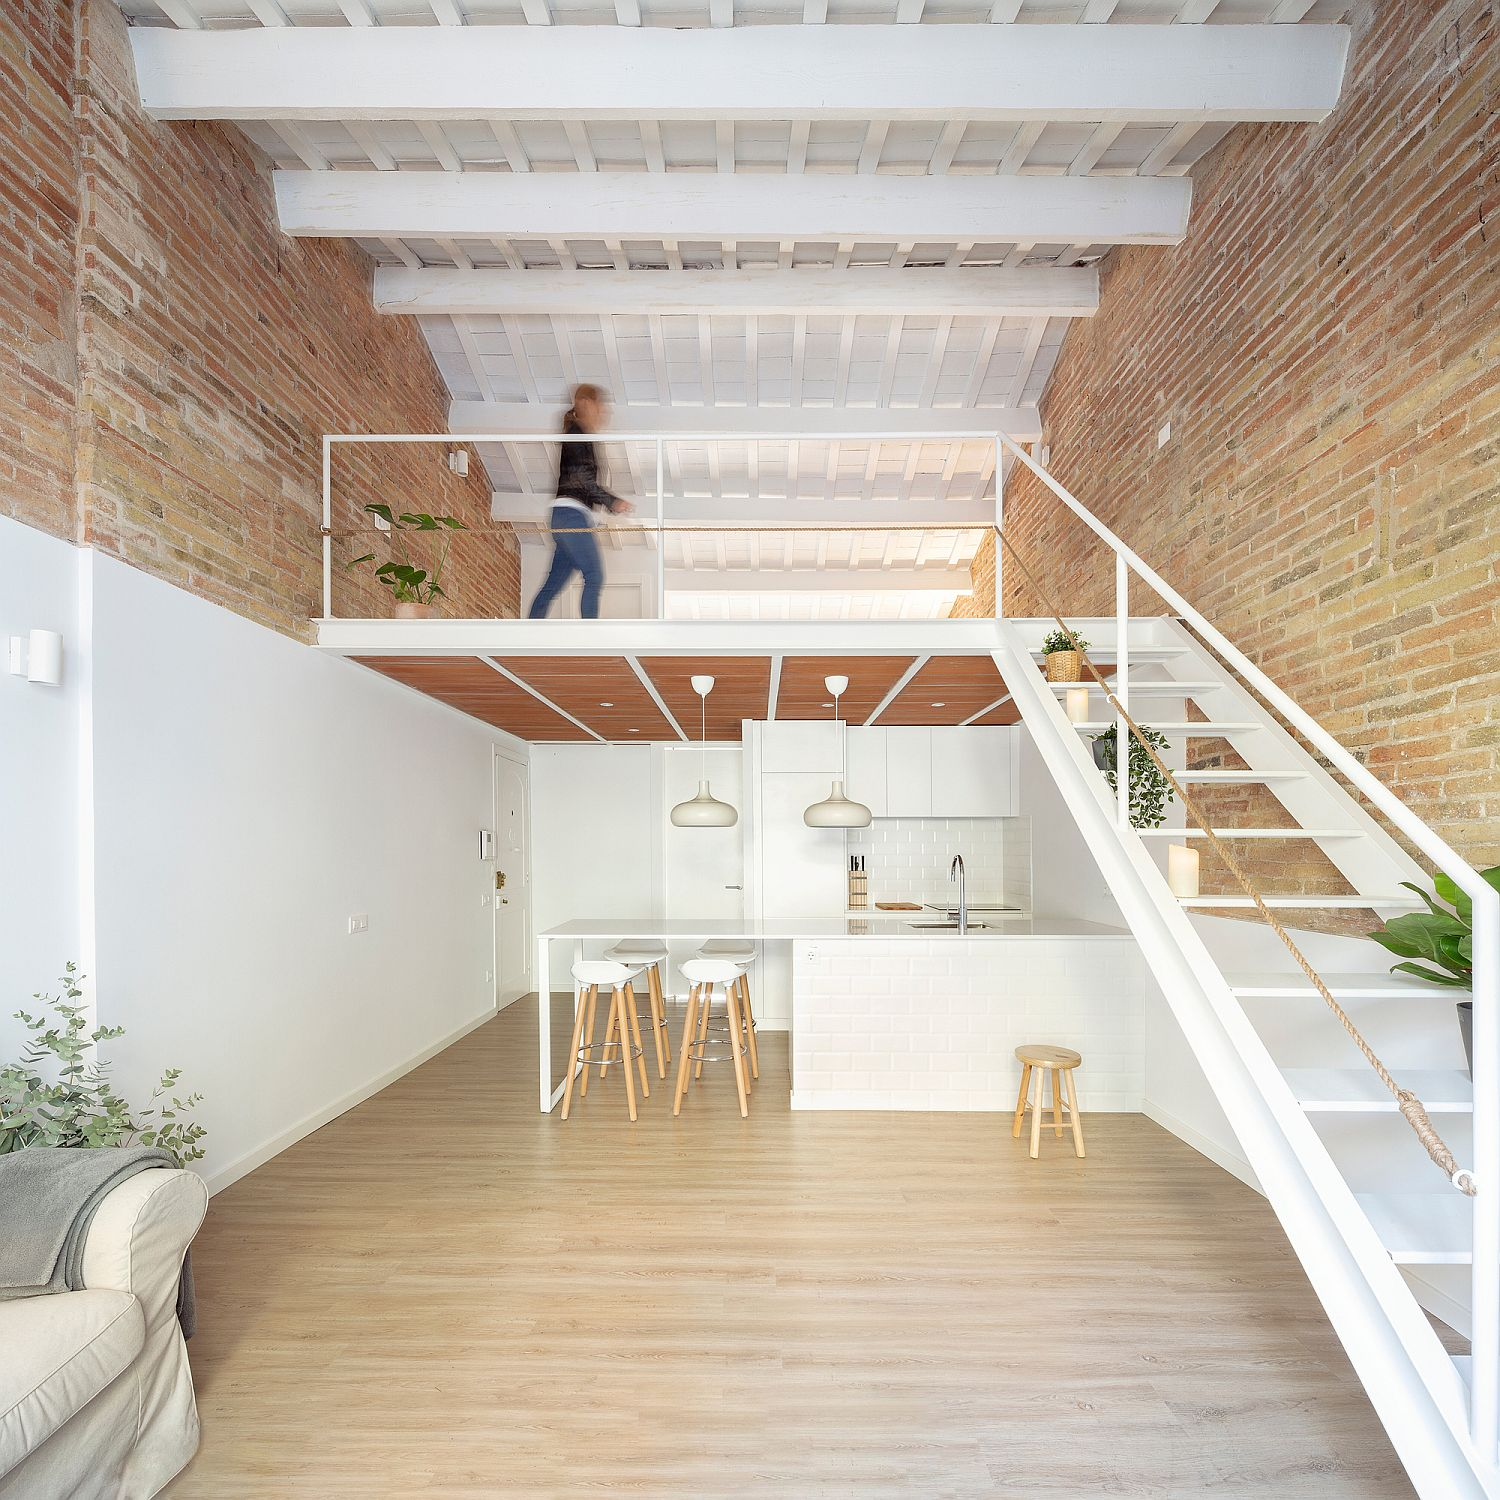 Mezzanine-level-of-the-small-Barcelona-apartment-adds-precious-additional-space-inside-the-tiny-setting-56073